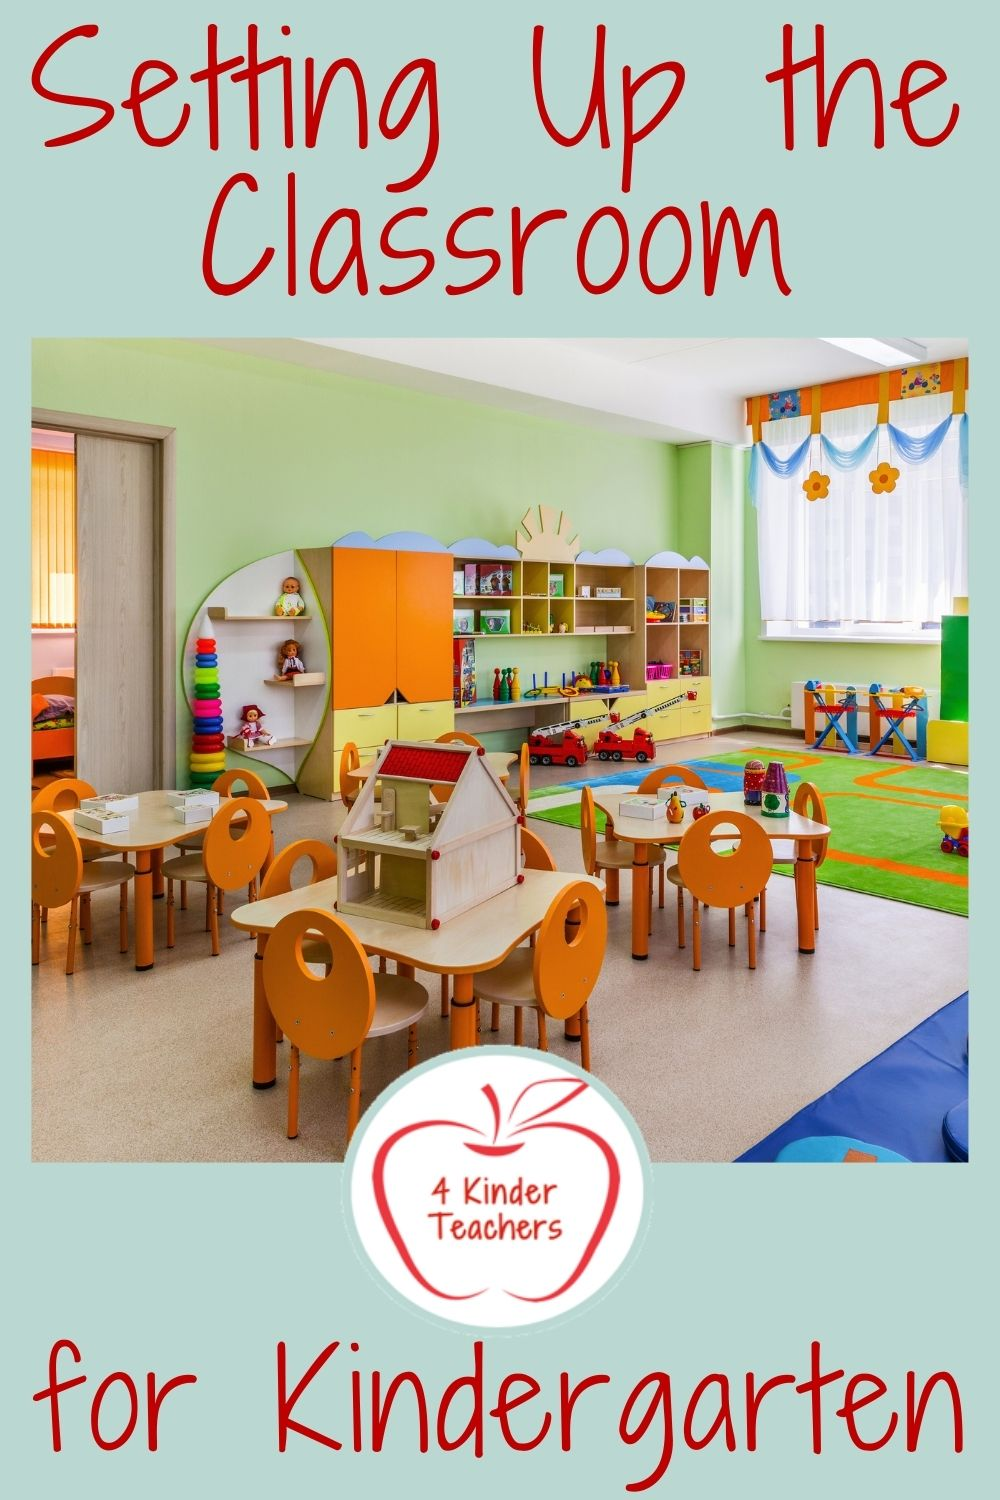 Setting Up the Classroom for Kindergarten